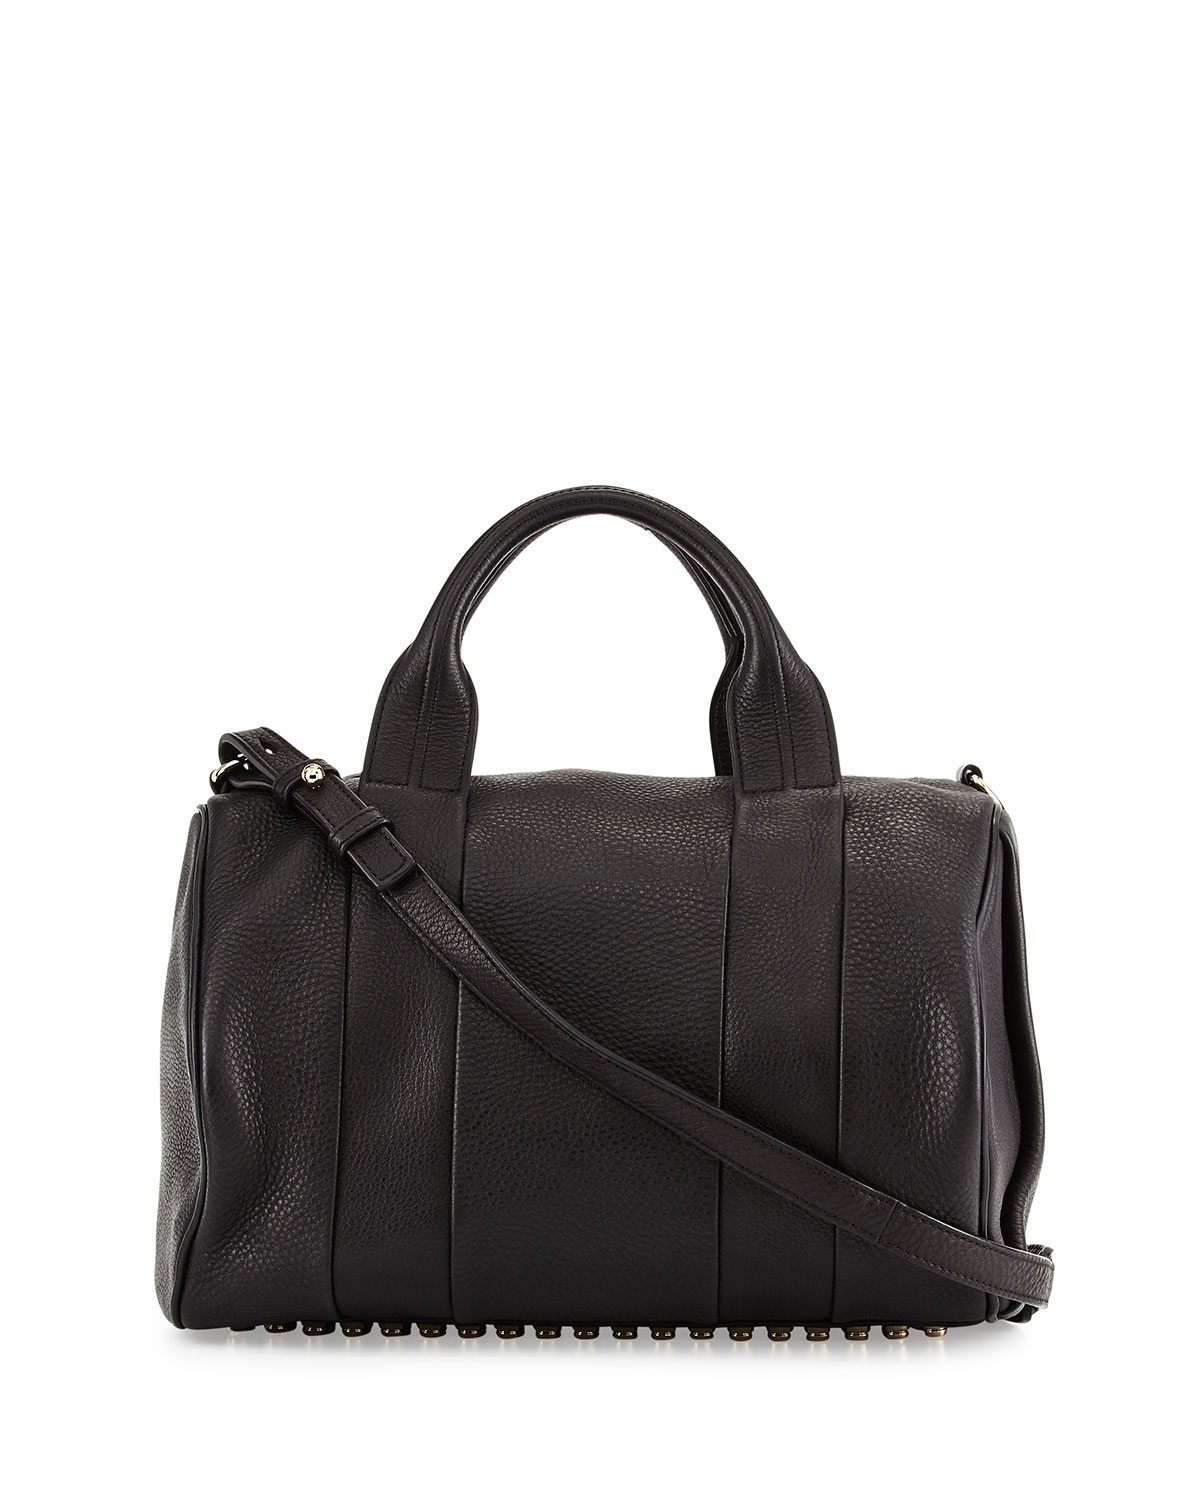 10292659 furthermore 205499 moreover Oscar Mayers Fuzzy Nutritional Math additionally Alexander Wang Rocco Leather Satchel Bag 1 in addition Sydney Evan Black Rhodium Hope Necklace Crystal. on oscar meyer label